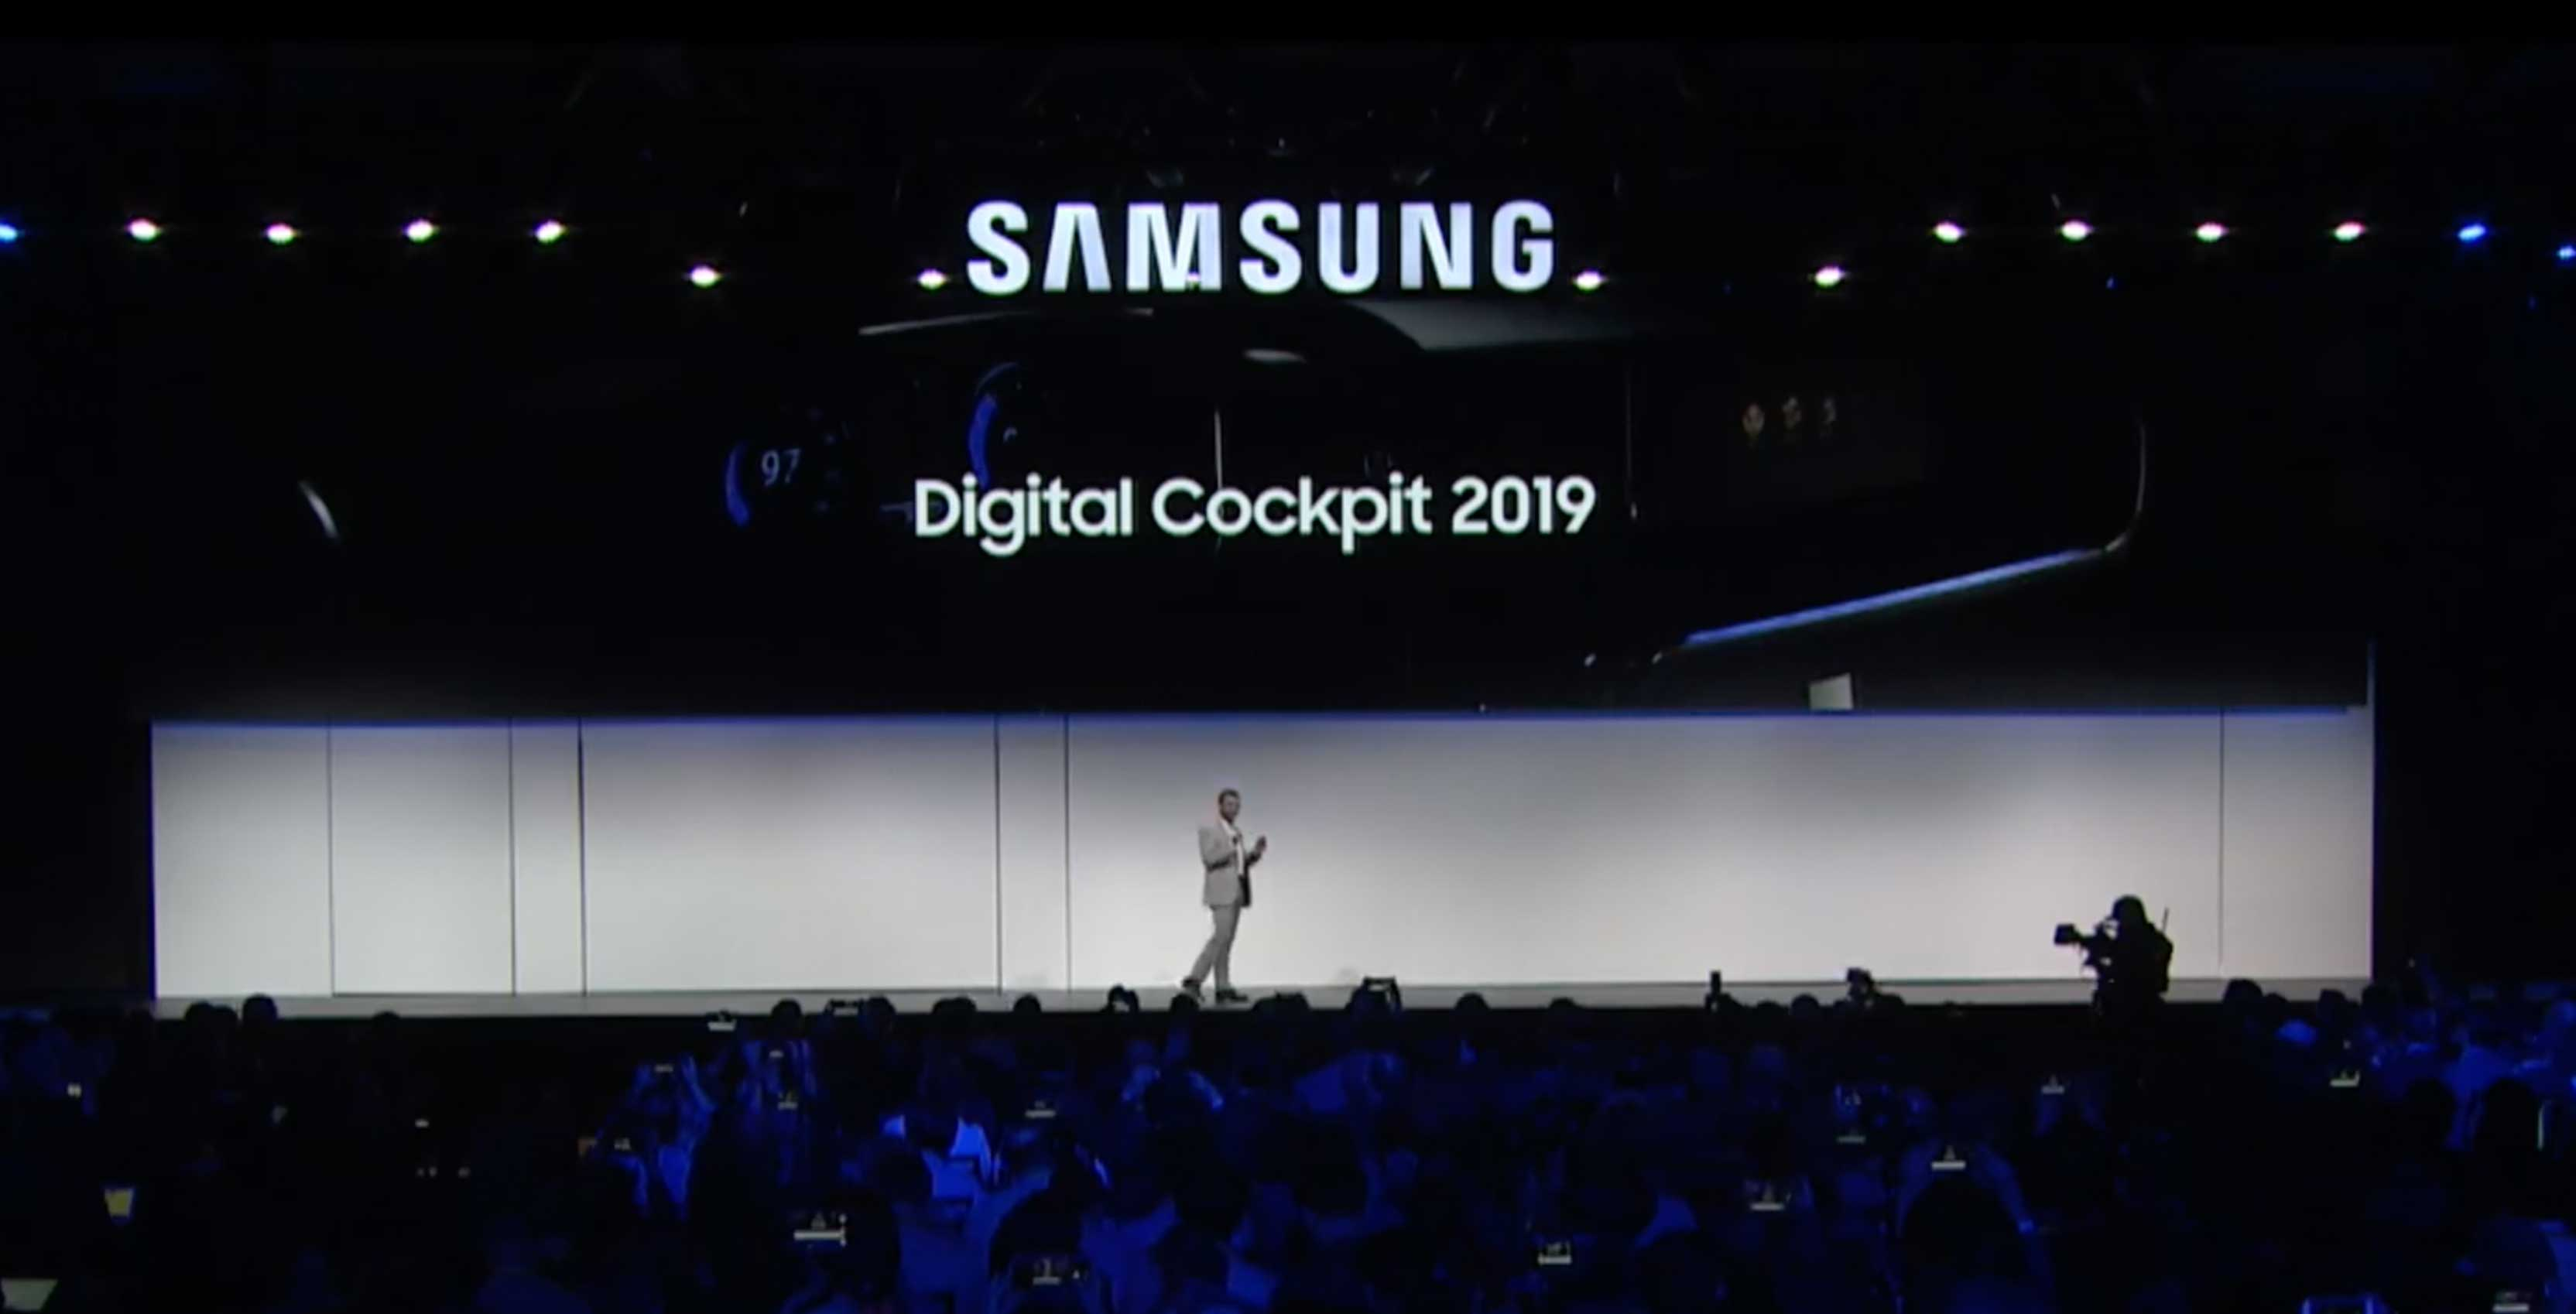 Samsung showcases its foldable phone to a limited audience at CES 2019